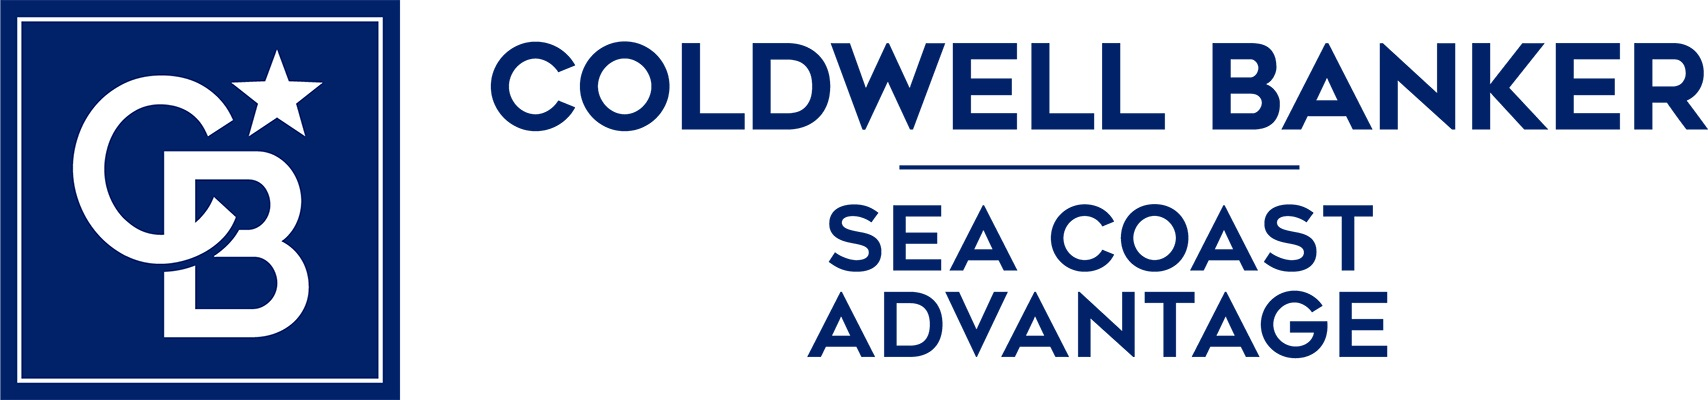 Jeff Domin - Coldwell Banker Sea Coast Advantage Realty